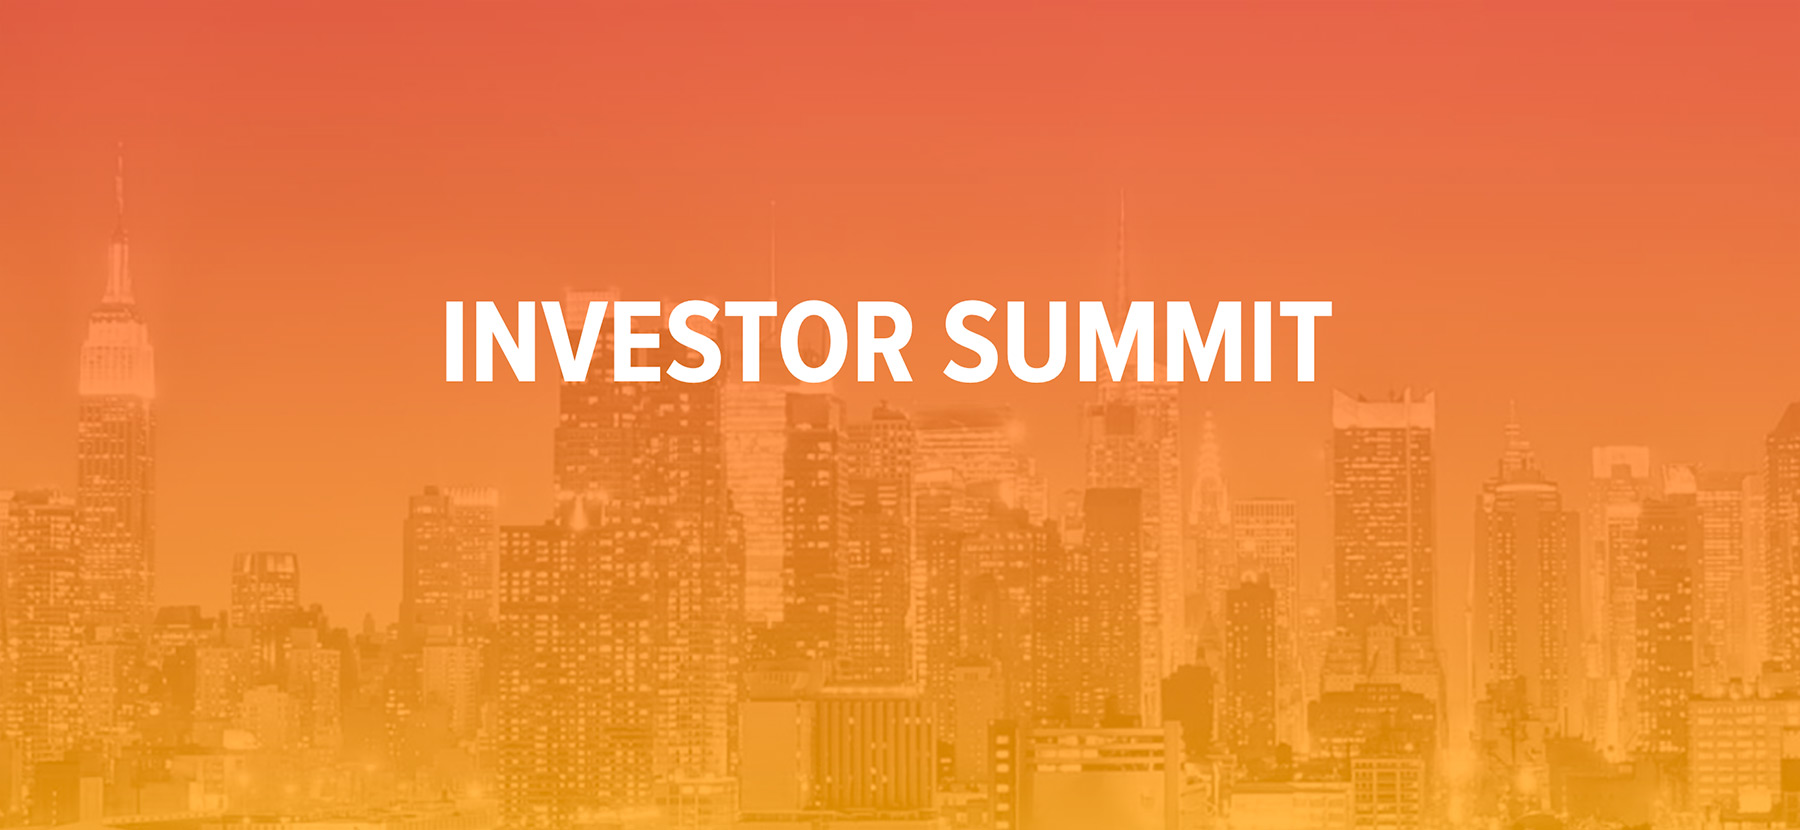 Investor Summit Spring Conference